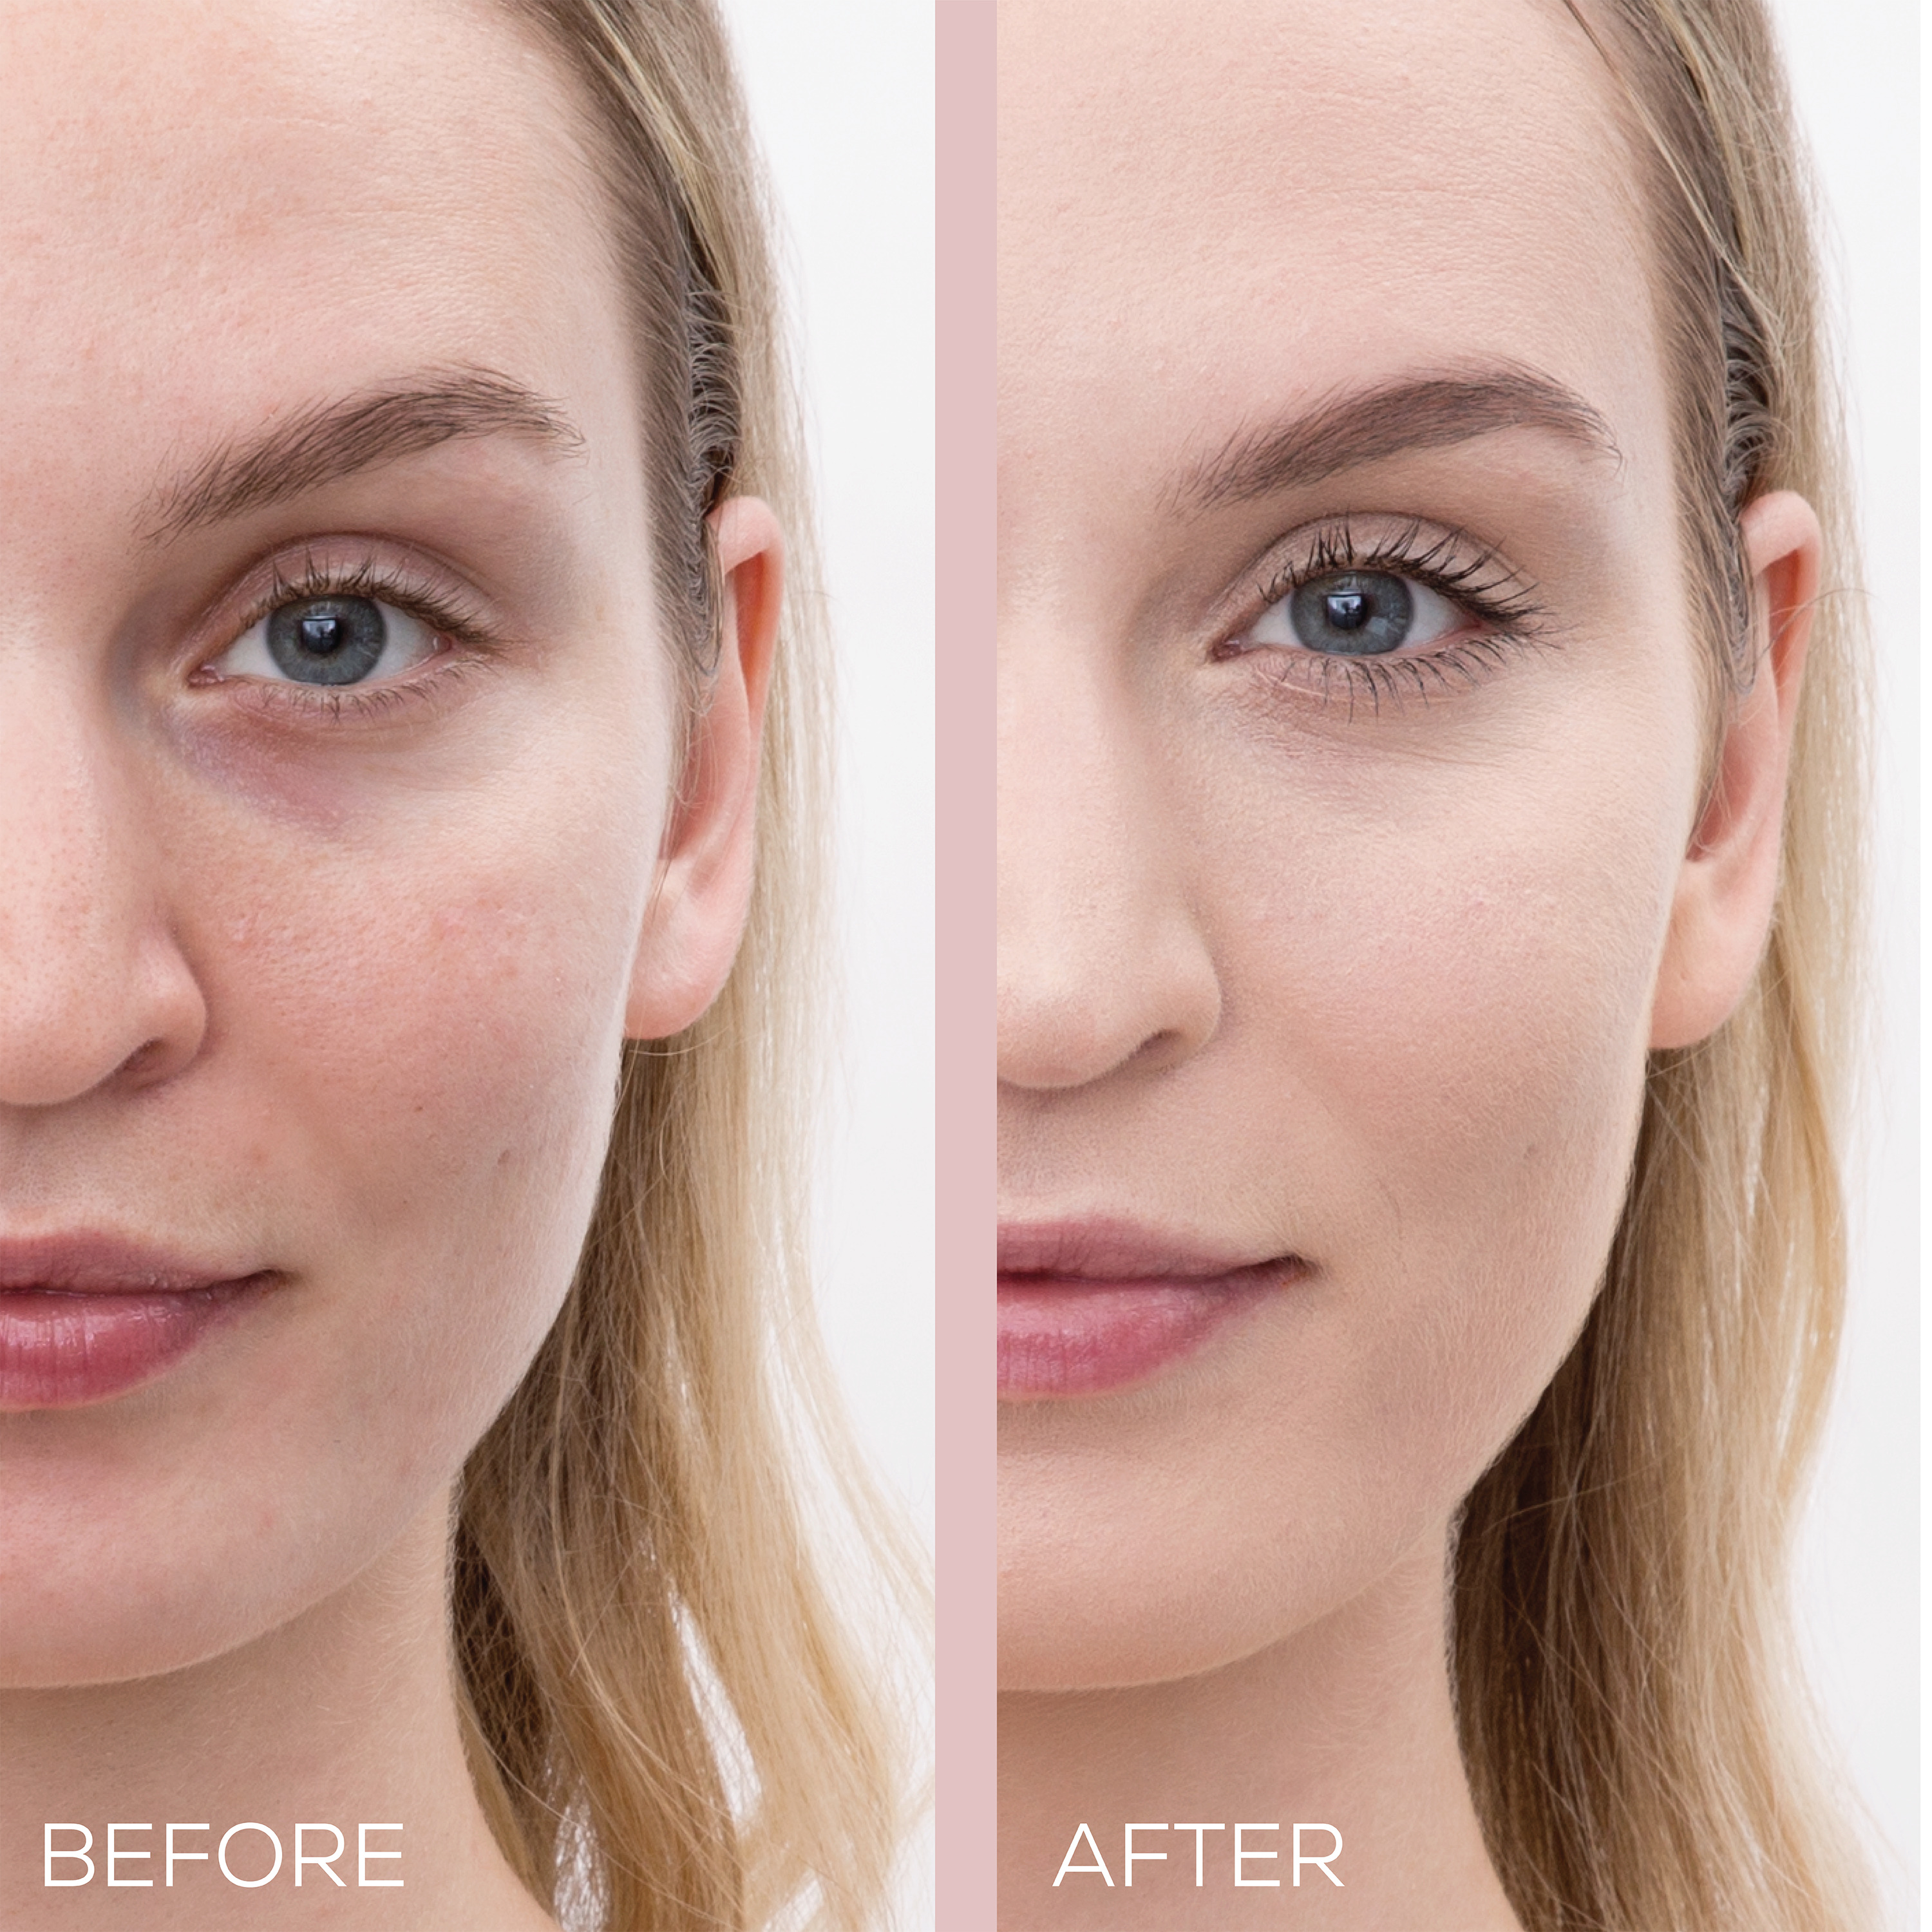 Acne coverage before and after